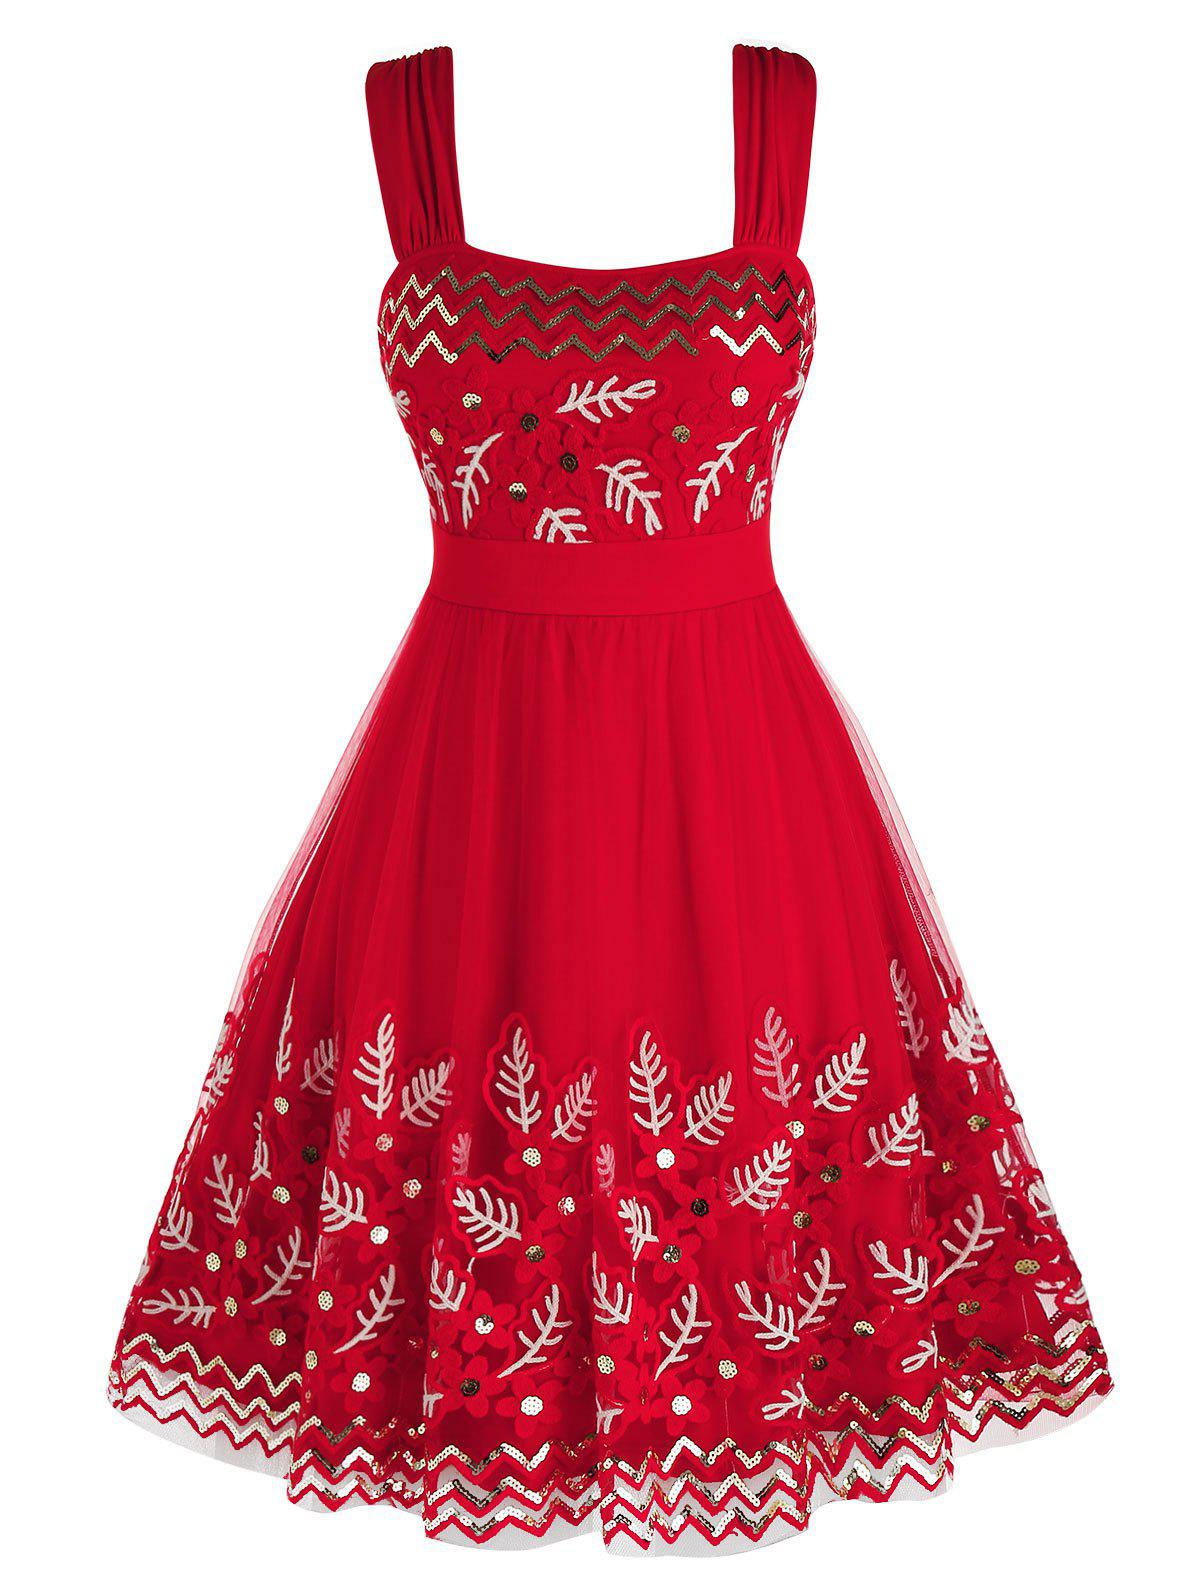 Plus Size Sequined Mesh Embroidered A Line Dress - LAVA RED 5X